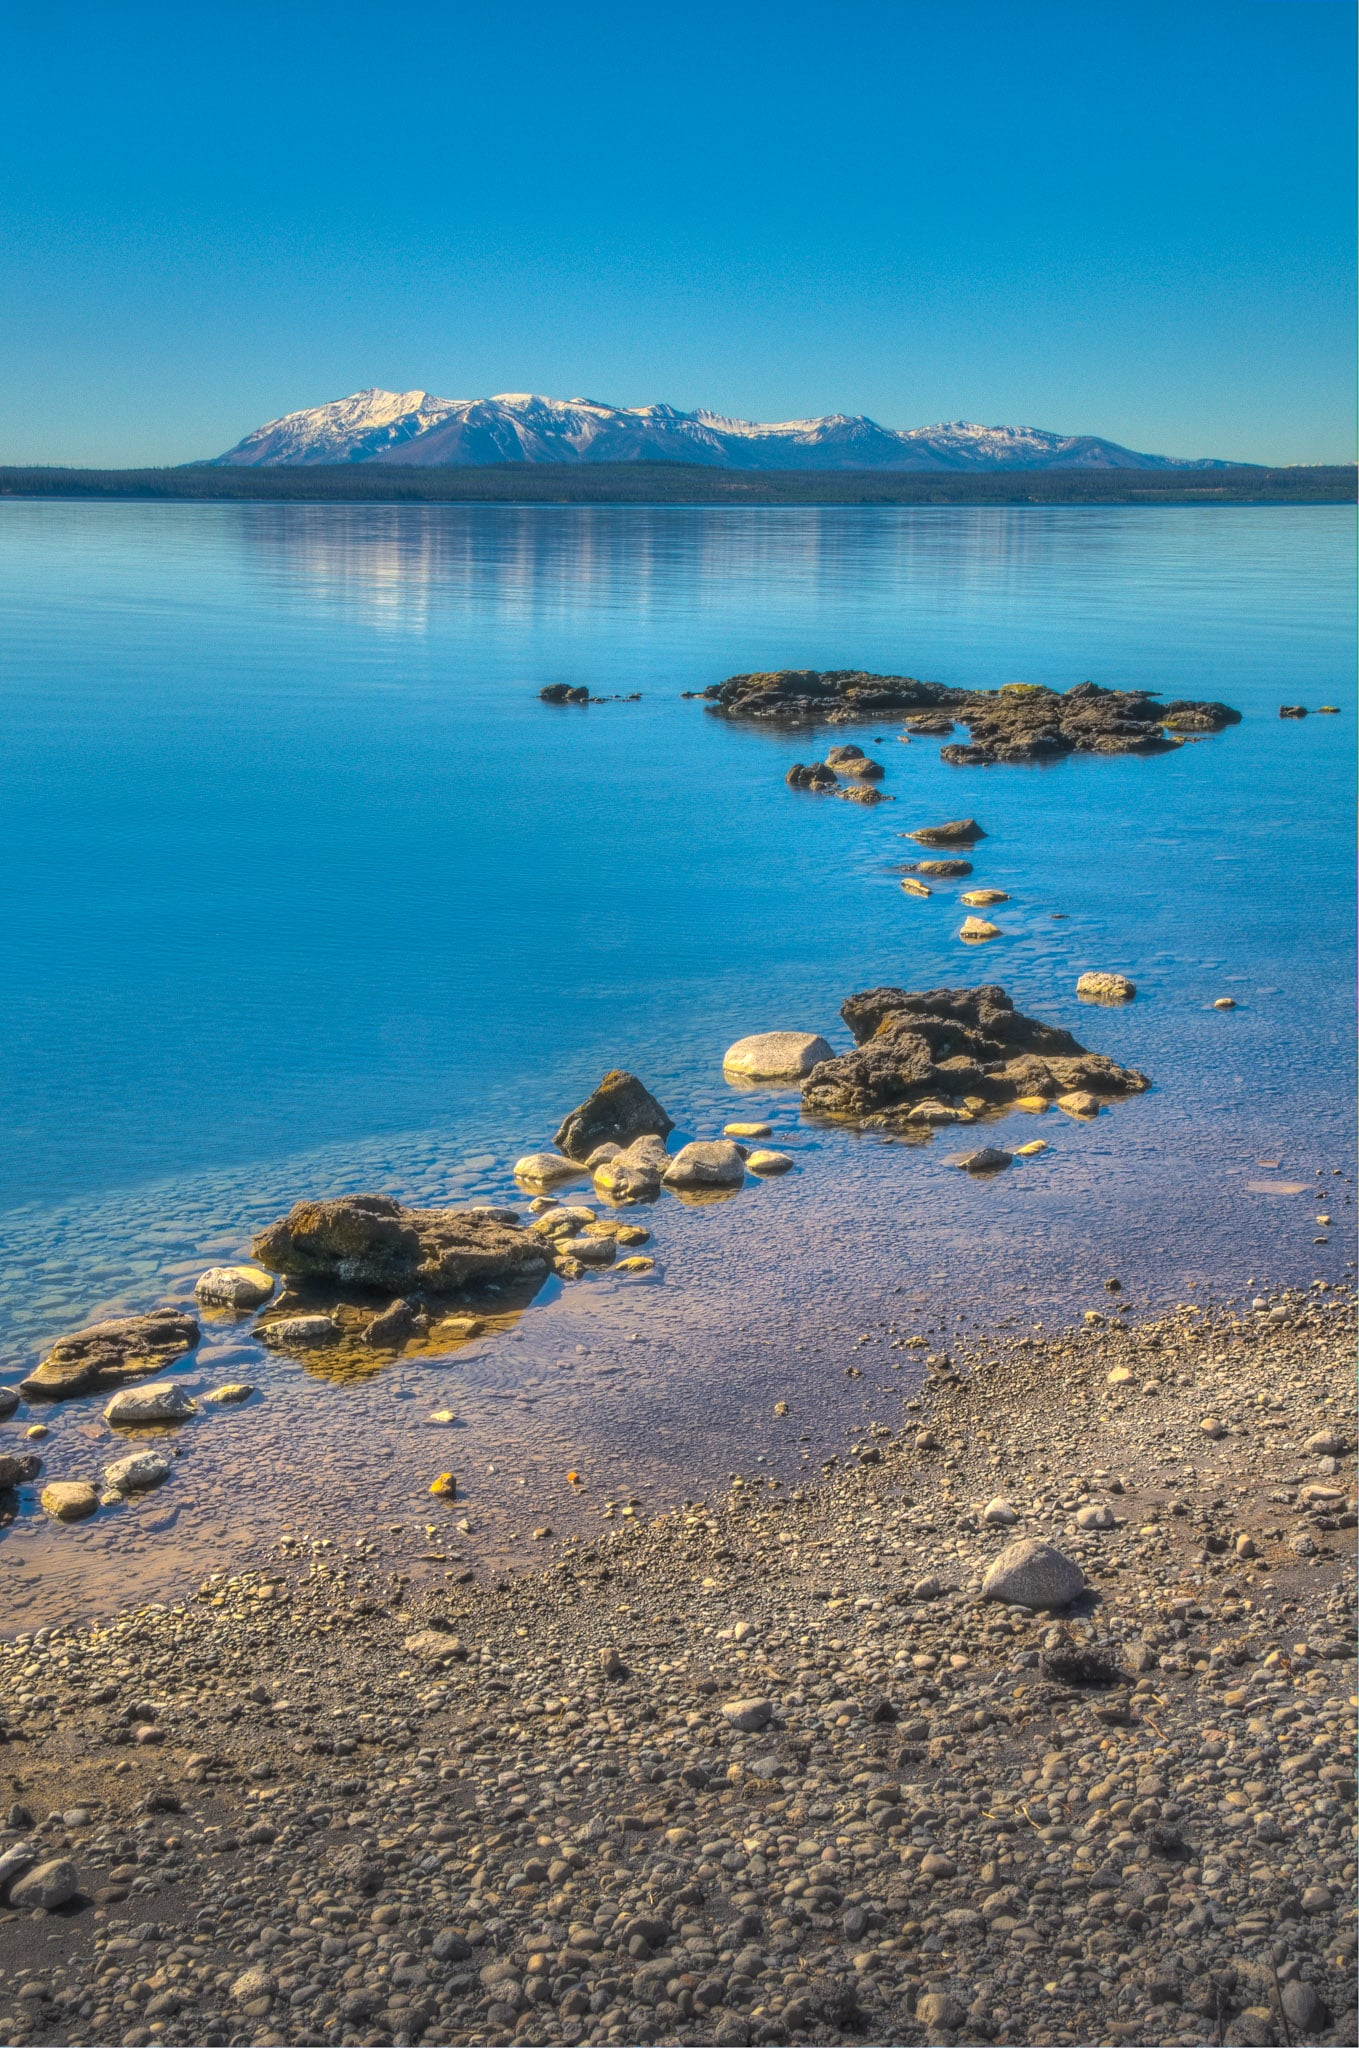 Looking across the West Thumb of Yellowstone Lake in Yellowstone National Park, Wyoming